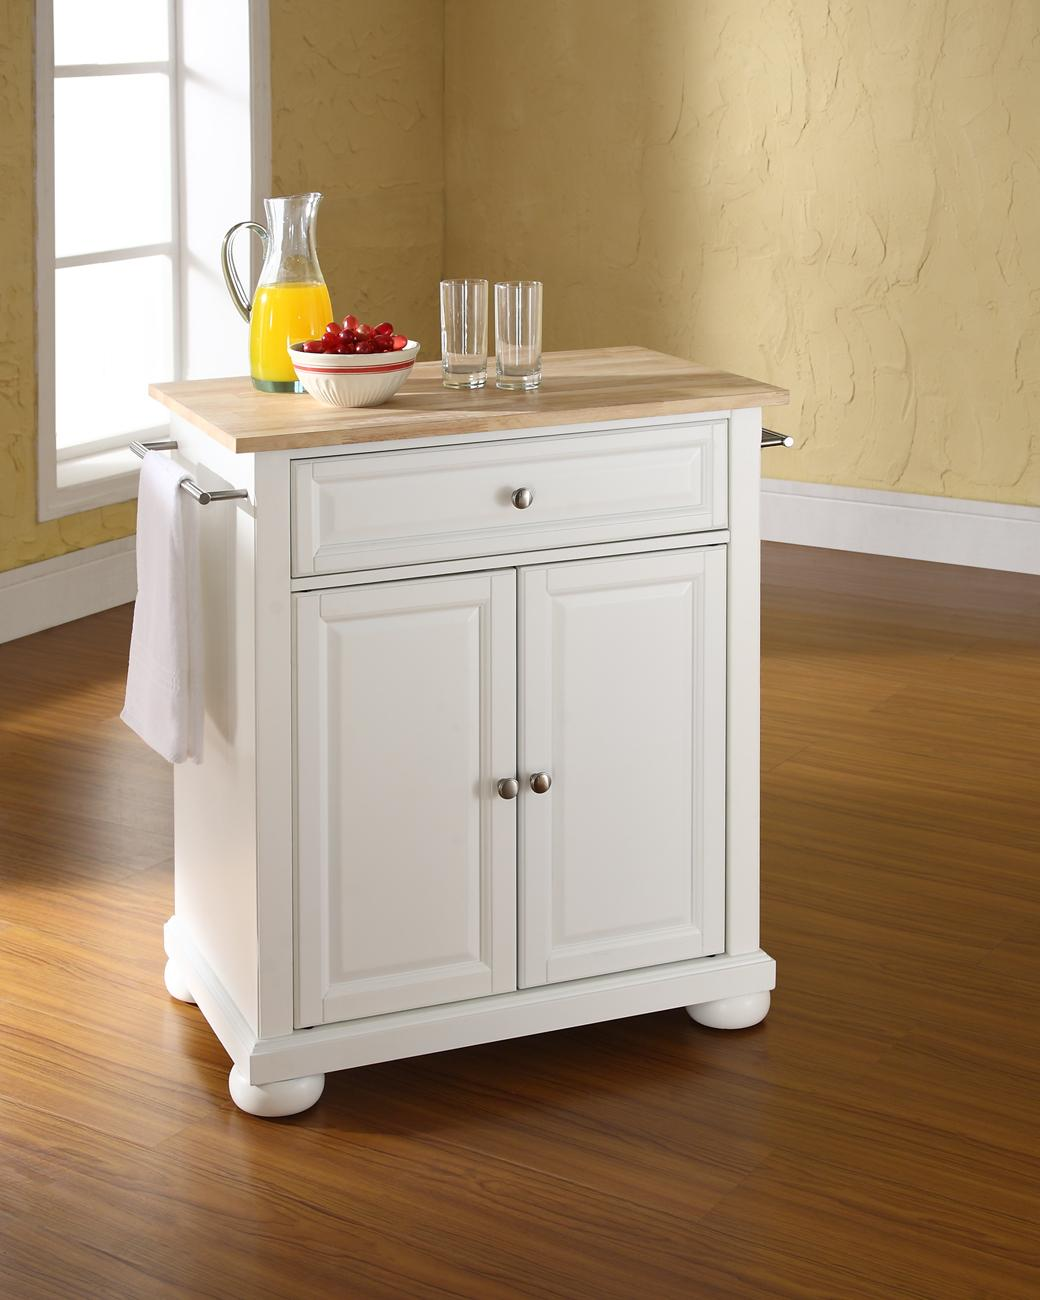 Crosley Alexandria Portable Kitchen Island by OJ merce